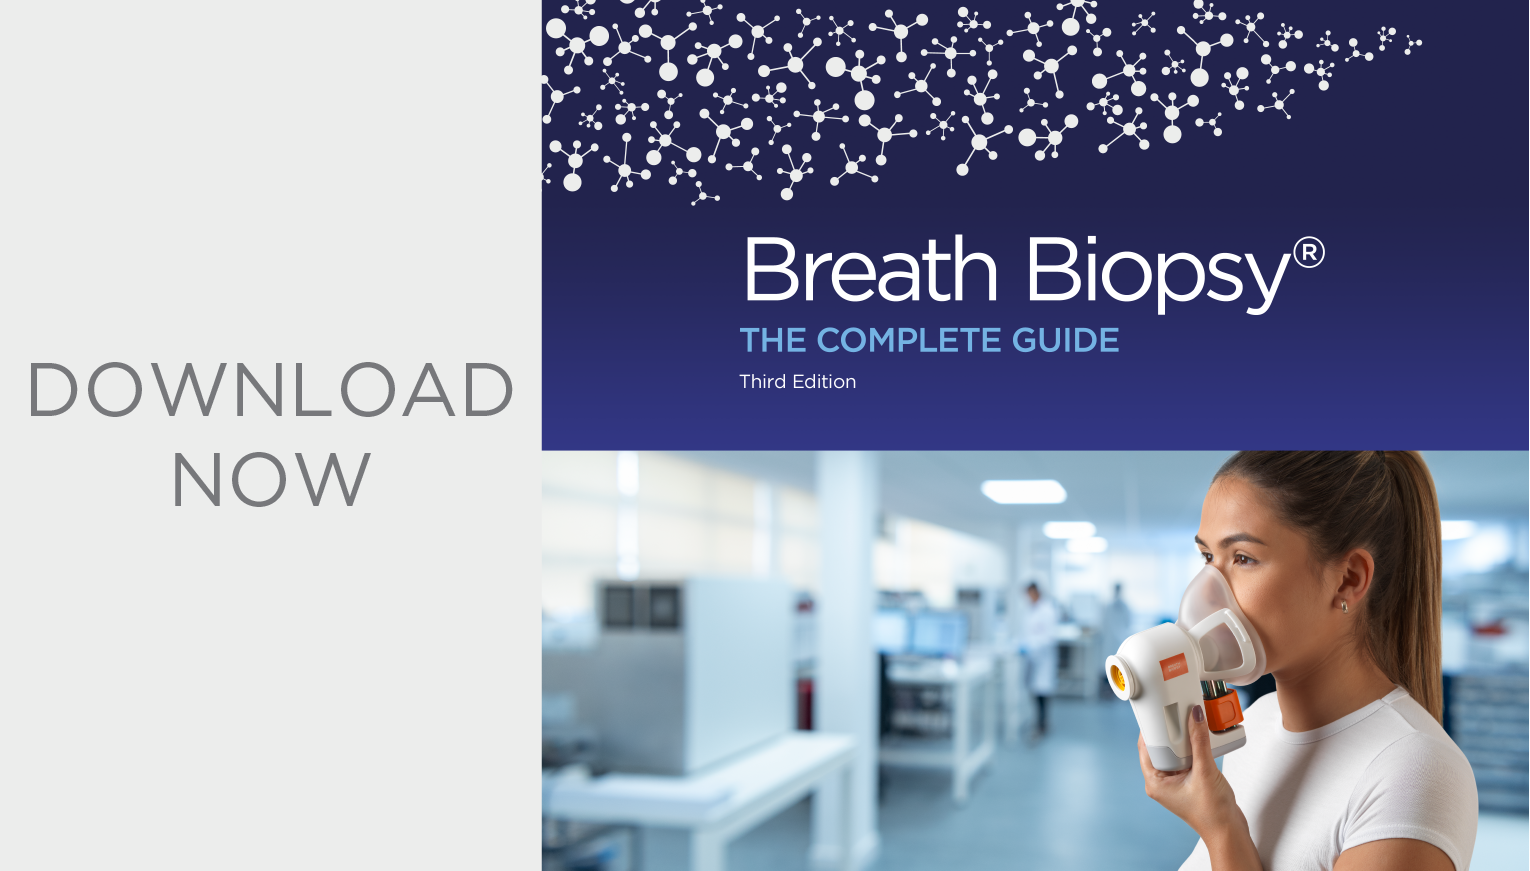 Breath Biopsy Guide - Download Now